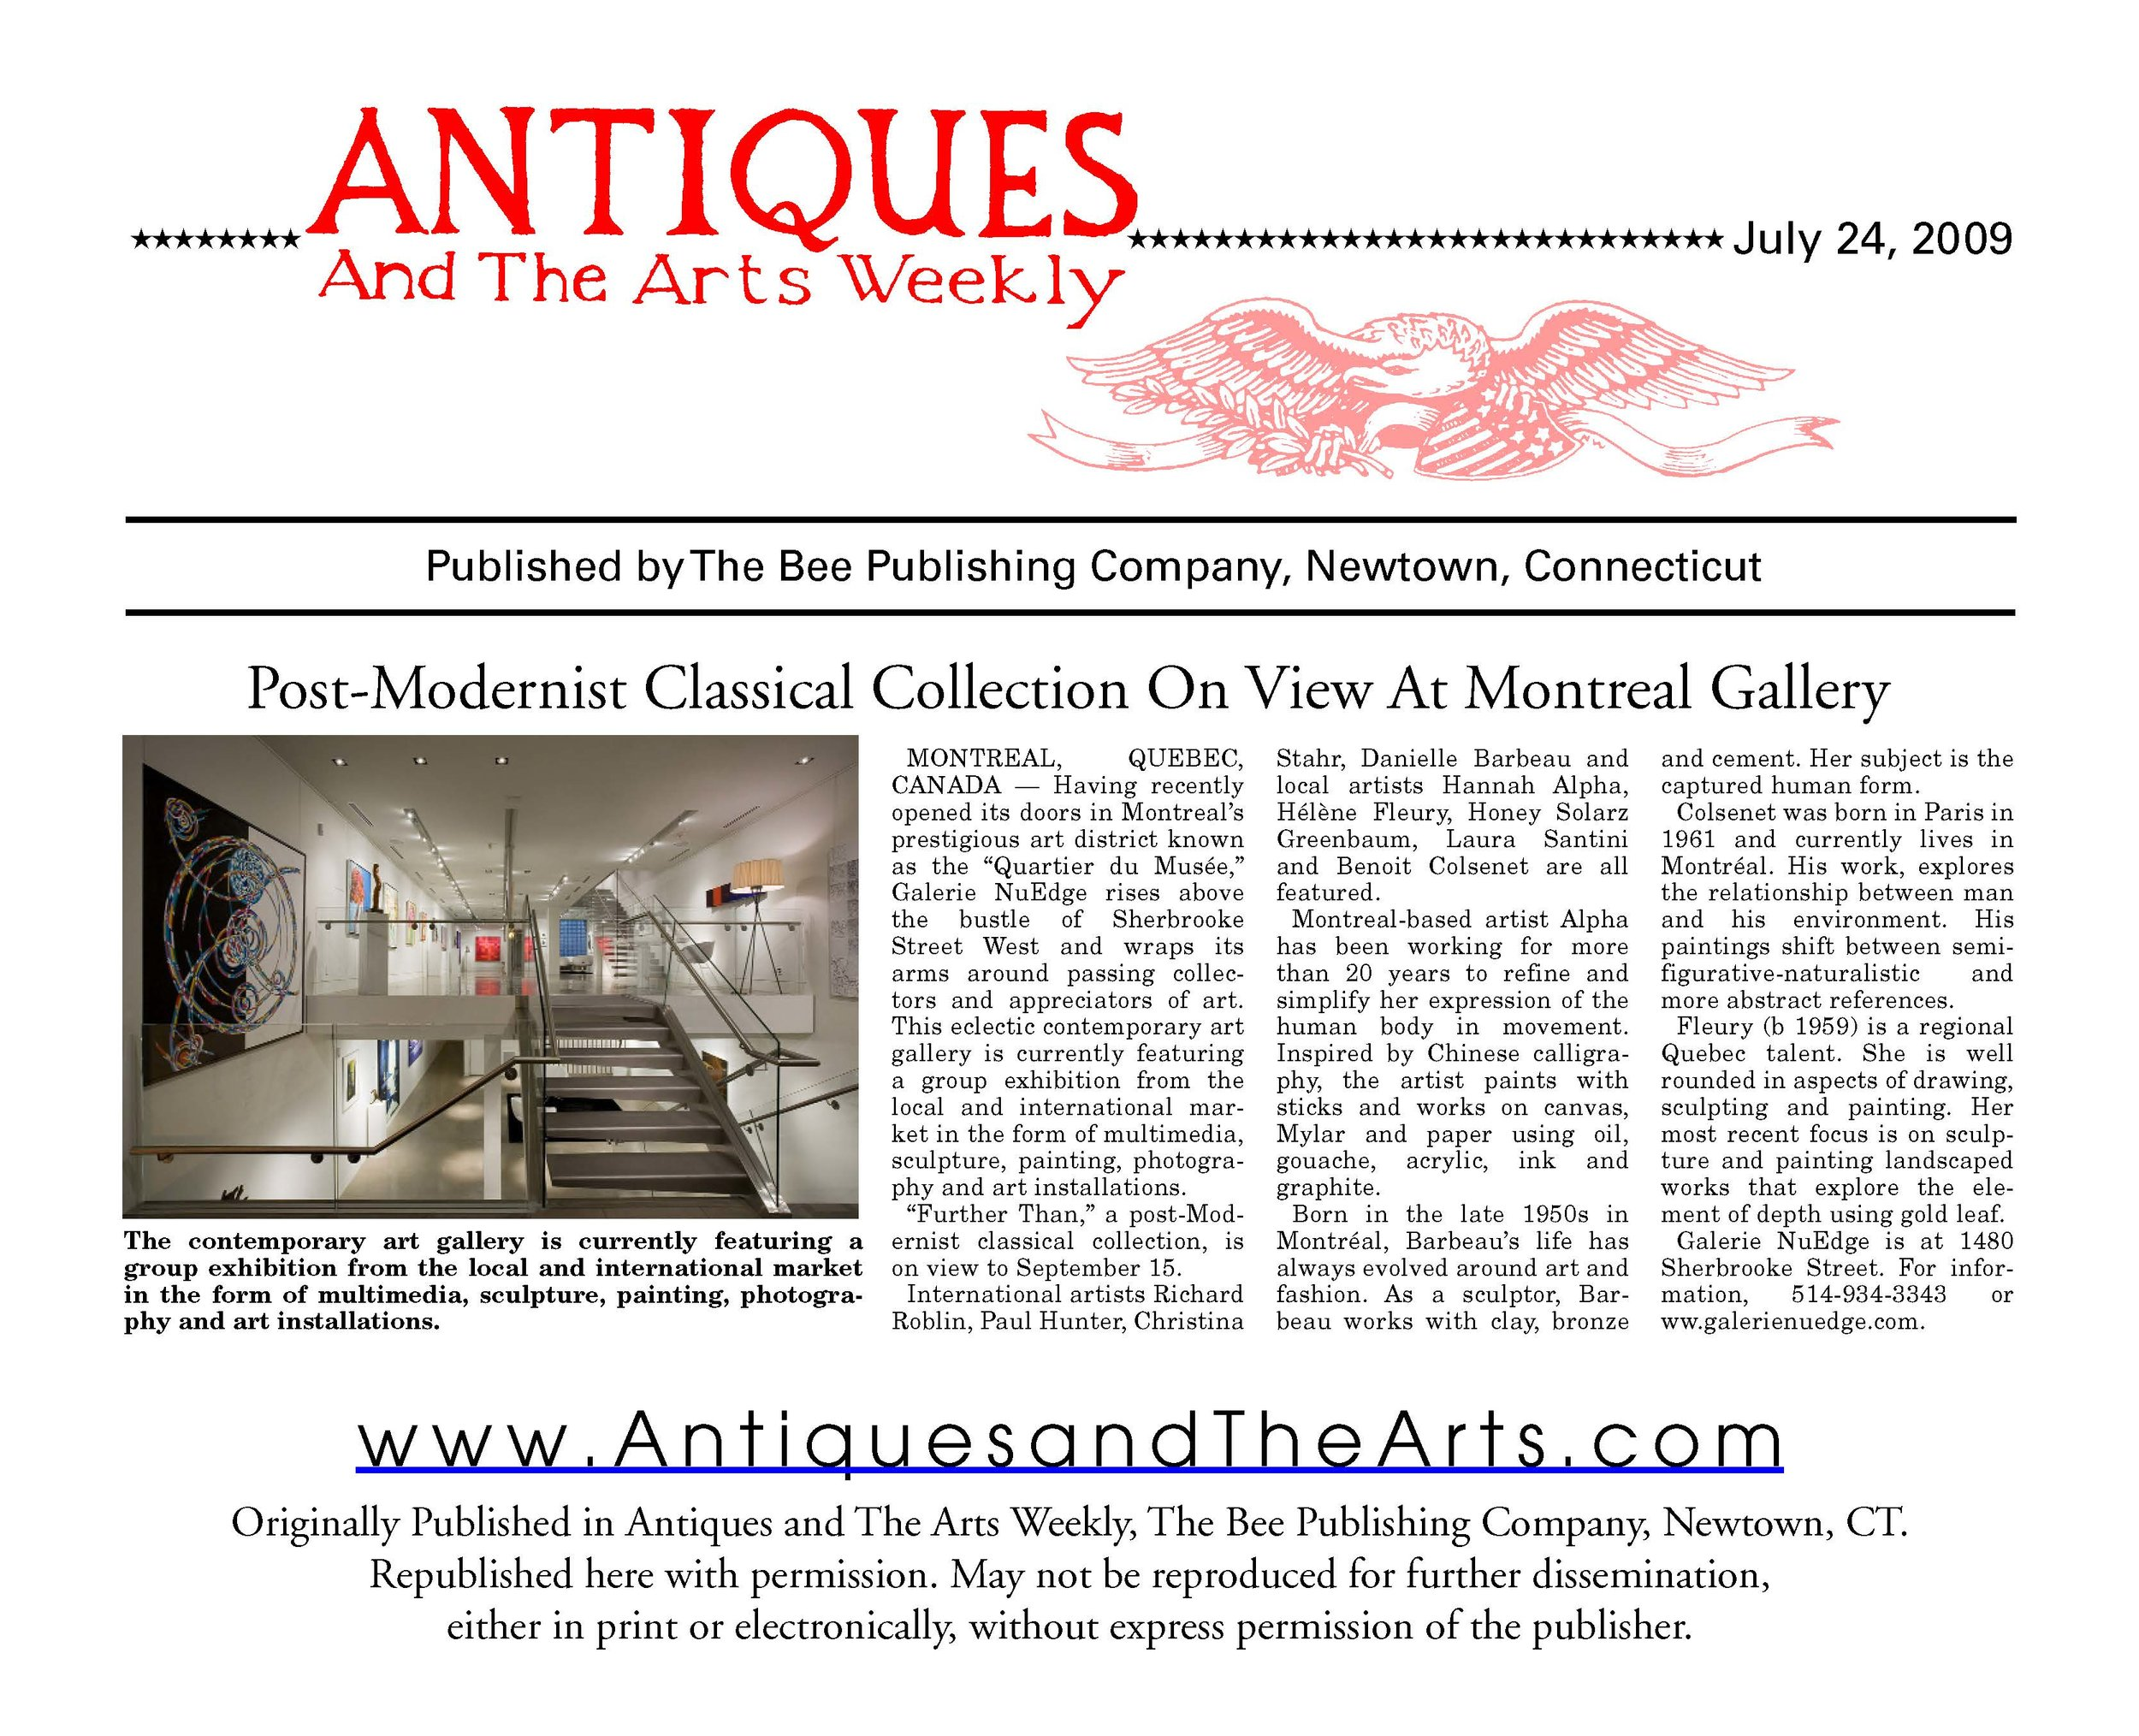 Antiques and the arts-08-09.jpg